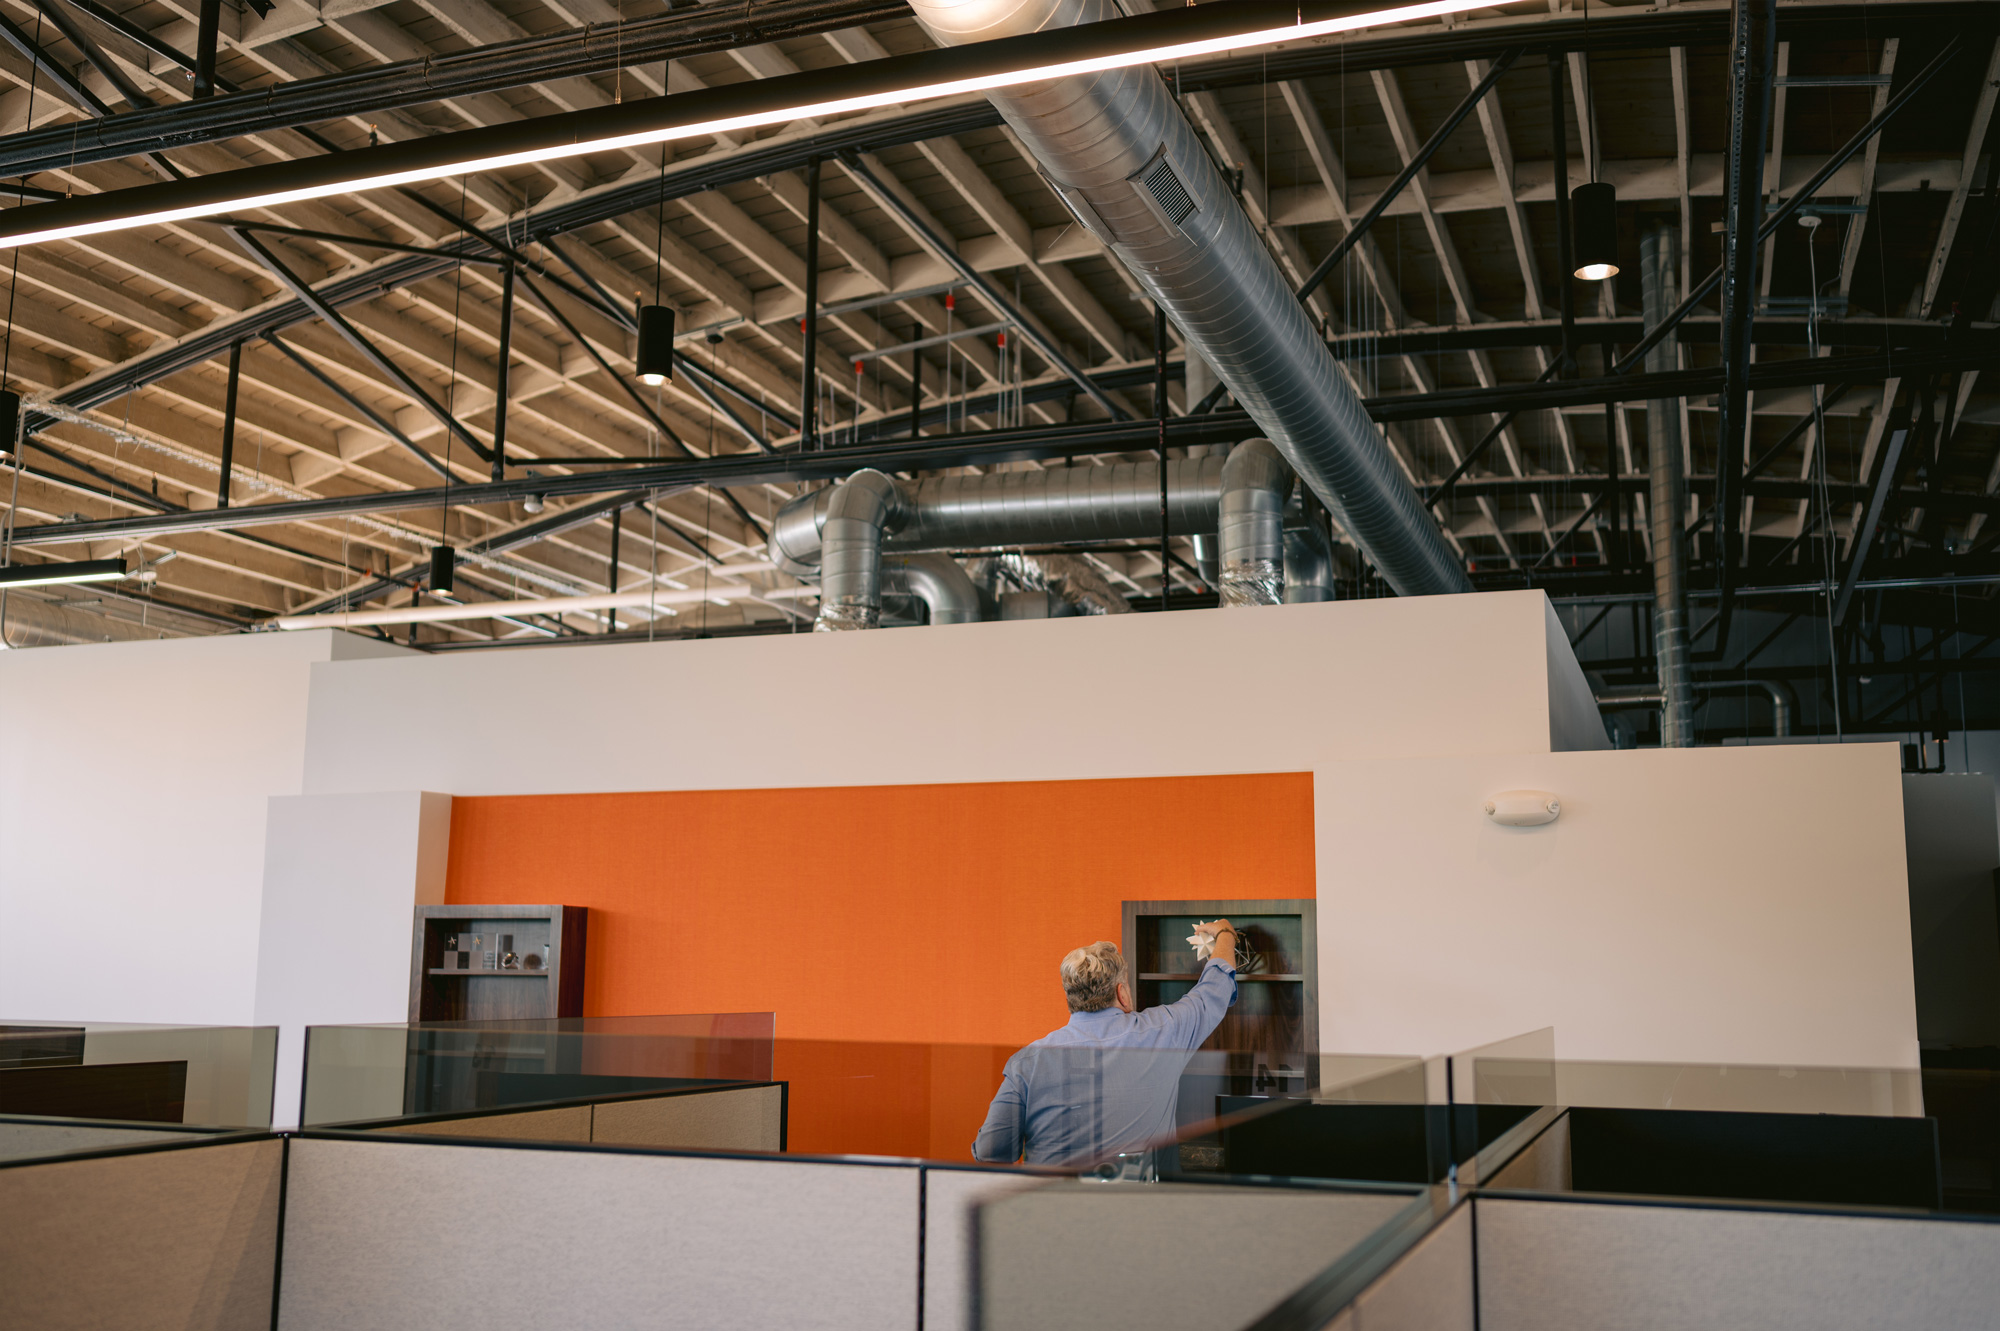 Ceiling and Display area of BOLTGROUP's new office